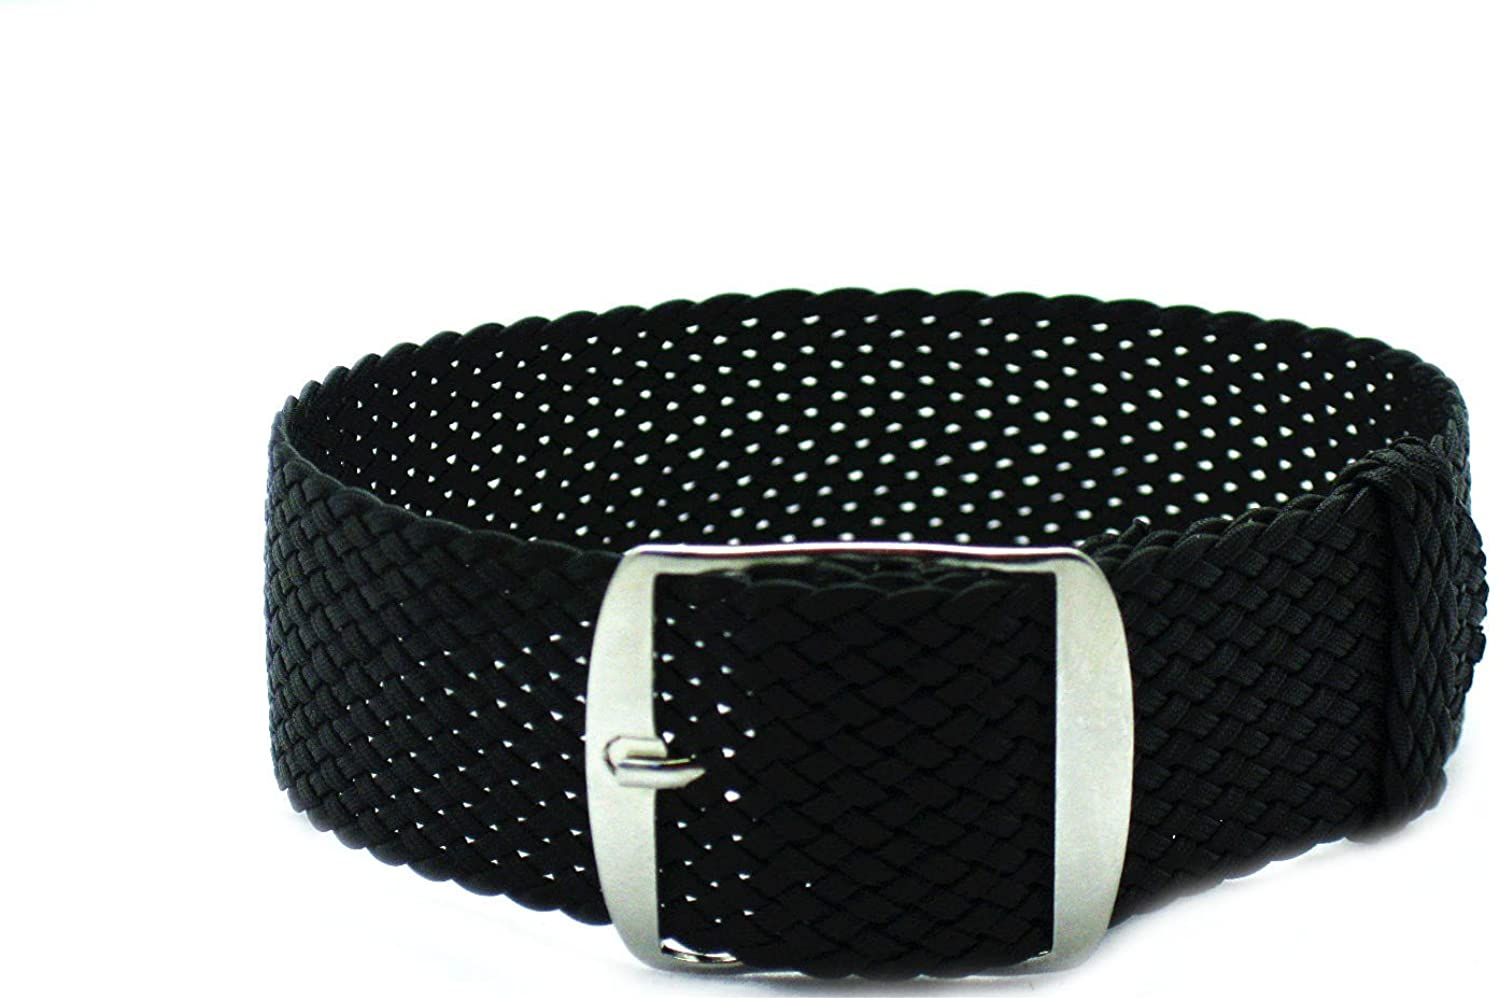 HNS 18mm Black Perlon Tropic Braided Woven Watch Strap with Brushed Buckle